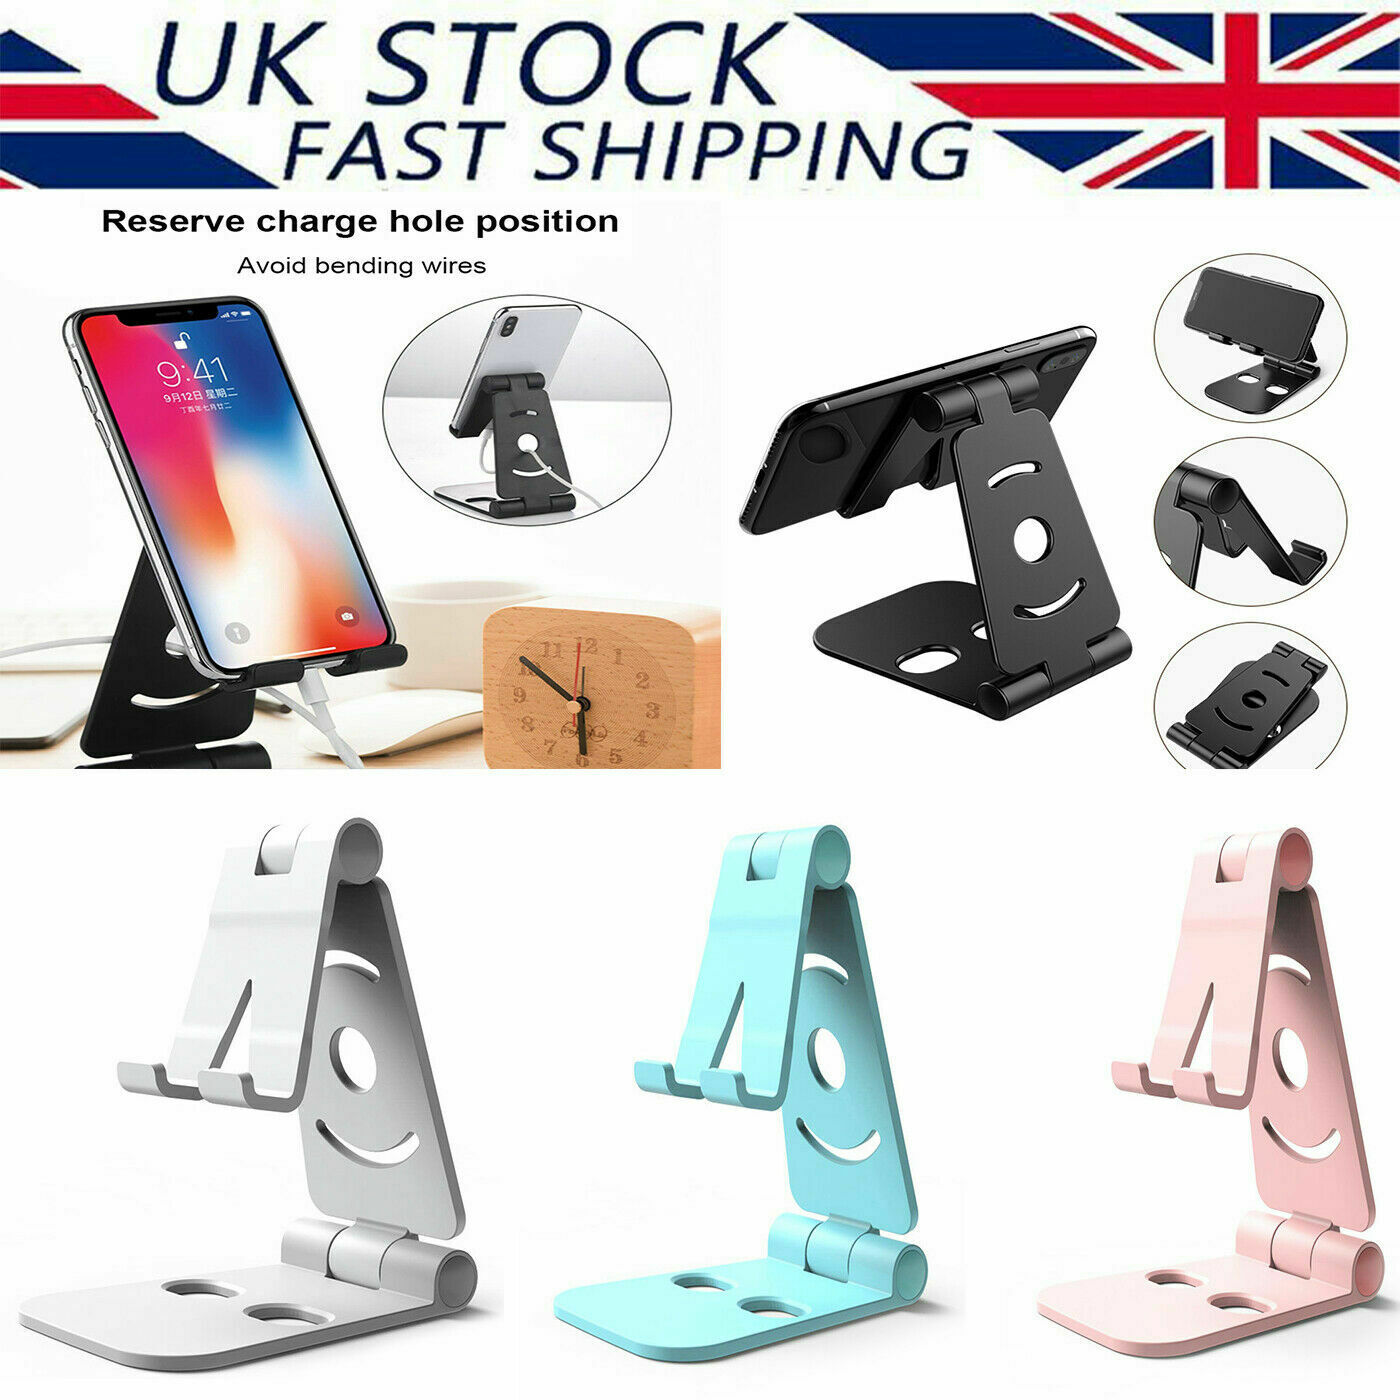 New Universal Adjustable Mobile Phone Holder Stand Desk Foldable For iPhone iPad